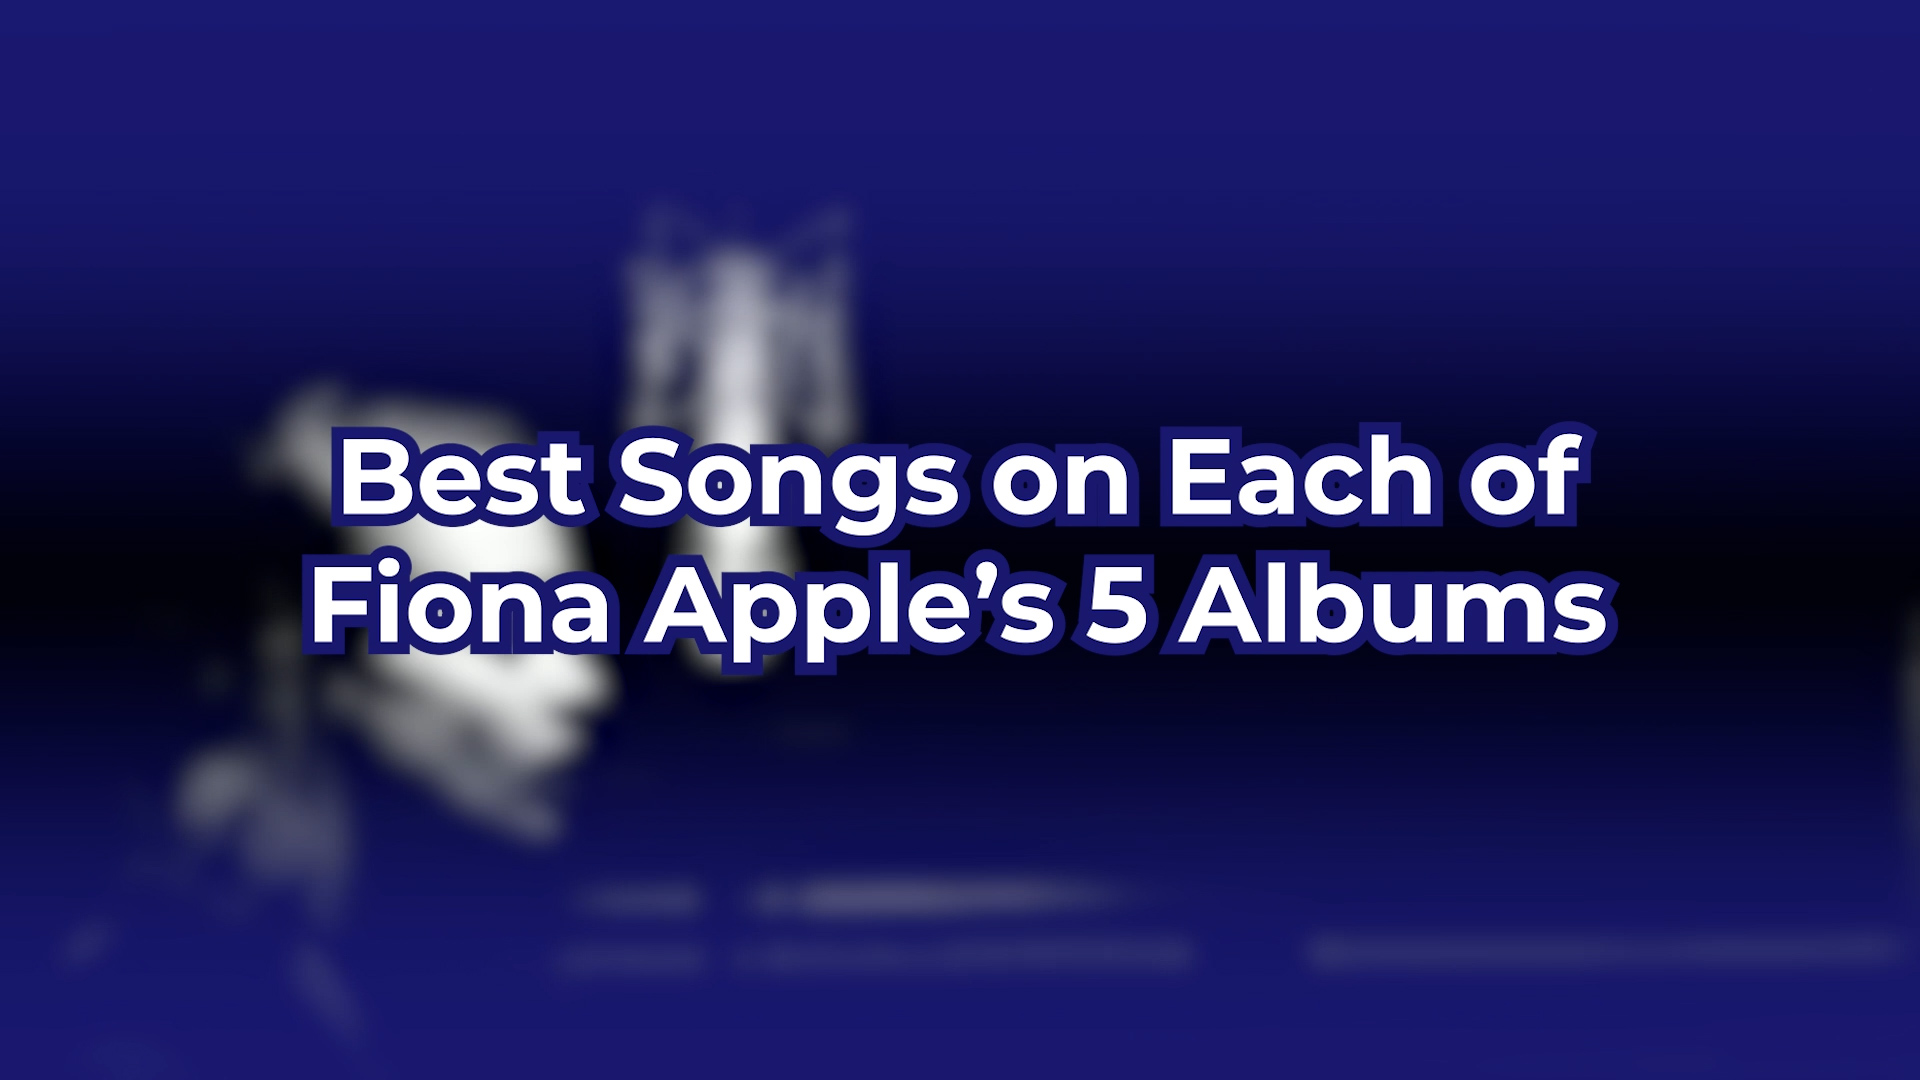 Best Songs on Each of Fiona Apple's Albums